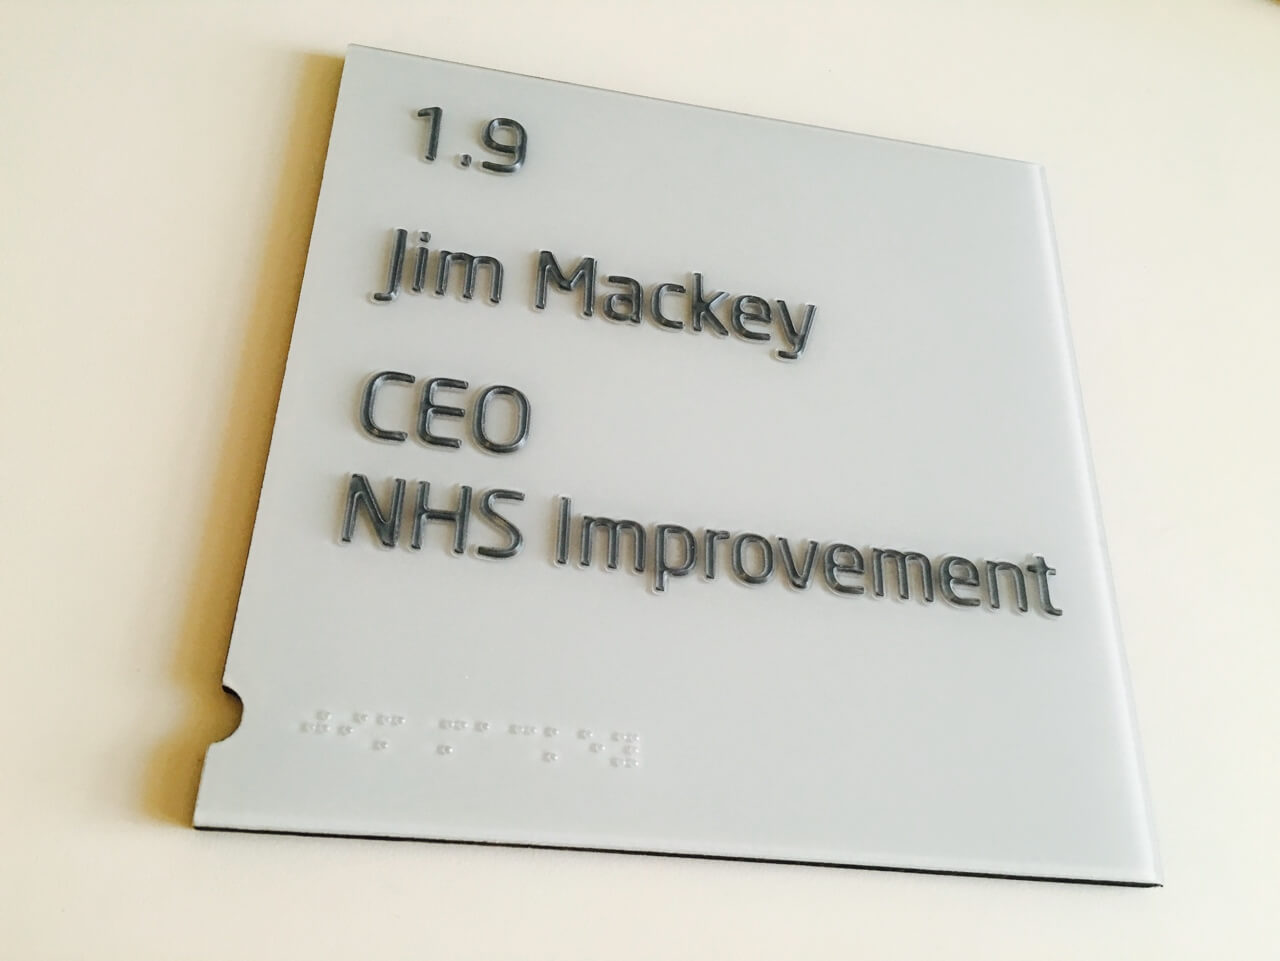 Wall-mounted door signage as part of an office wayfinding scheme